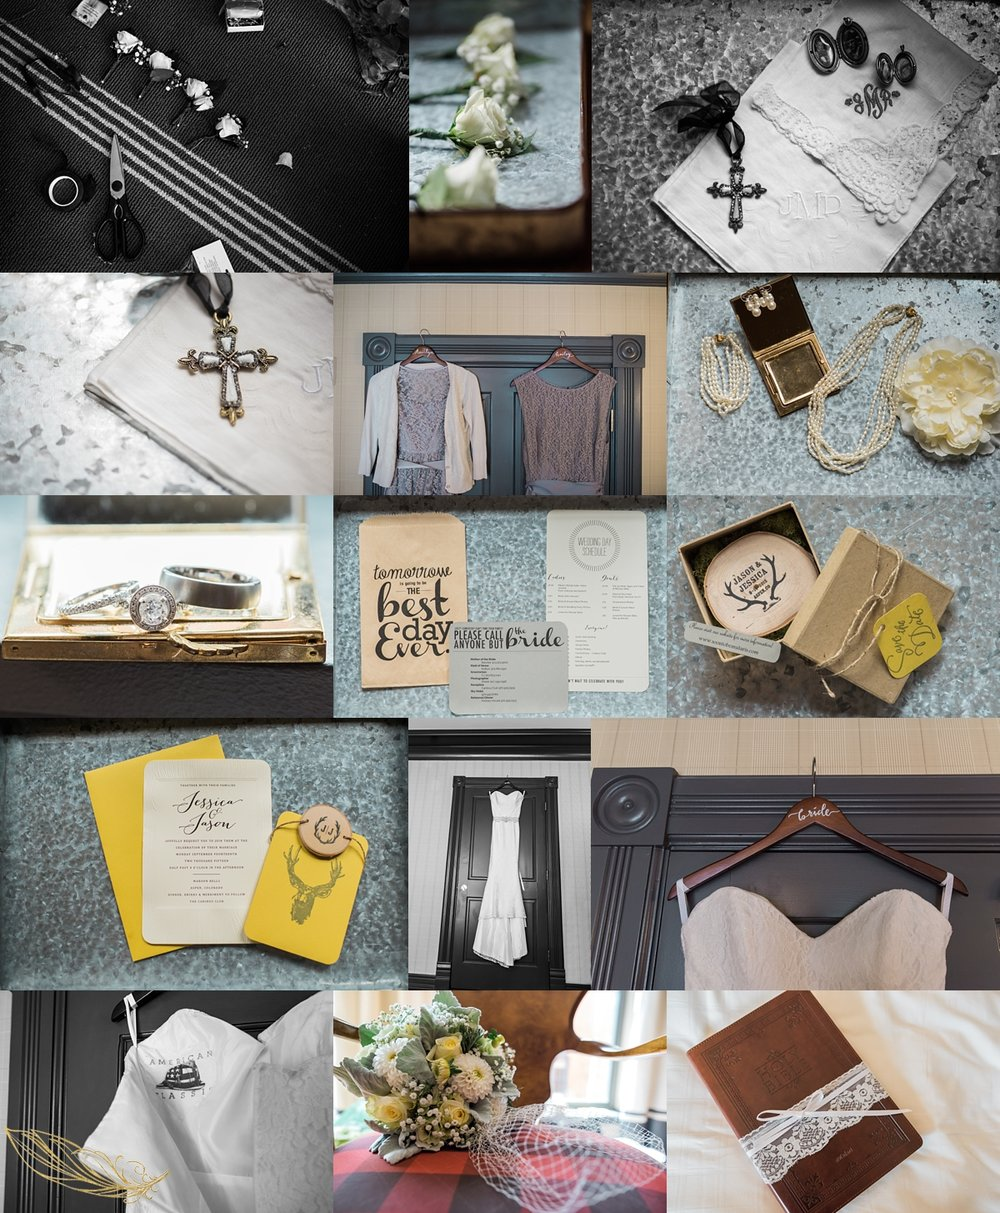 diy wedding details, wooden wedding details, hotel jerome wedding, colorado wedding details, colorado mountain wedding photographer, diy wedding flowers